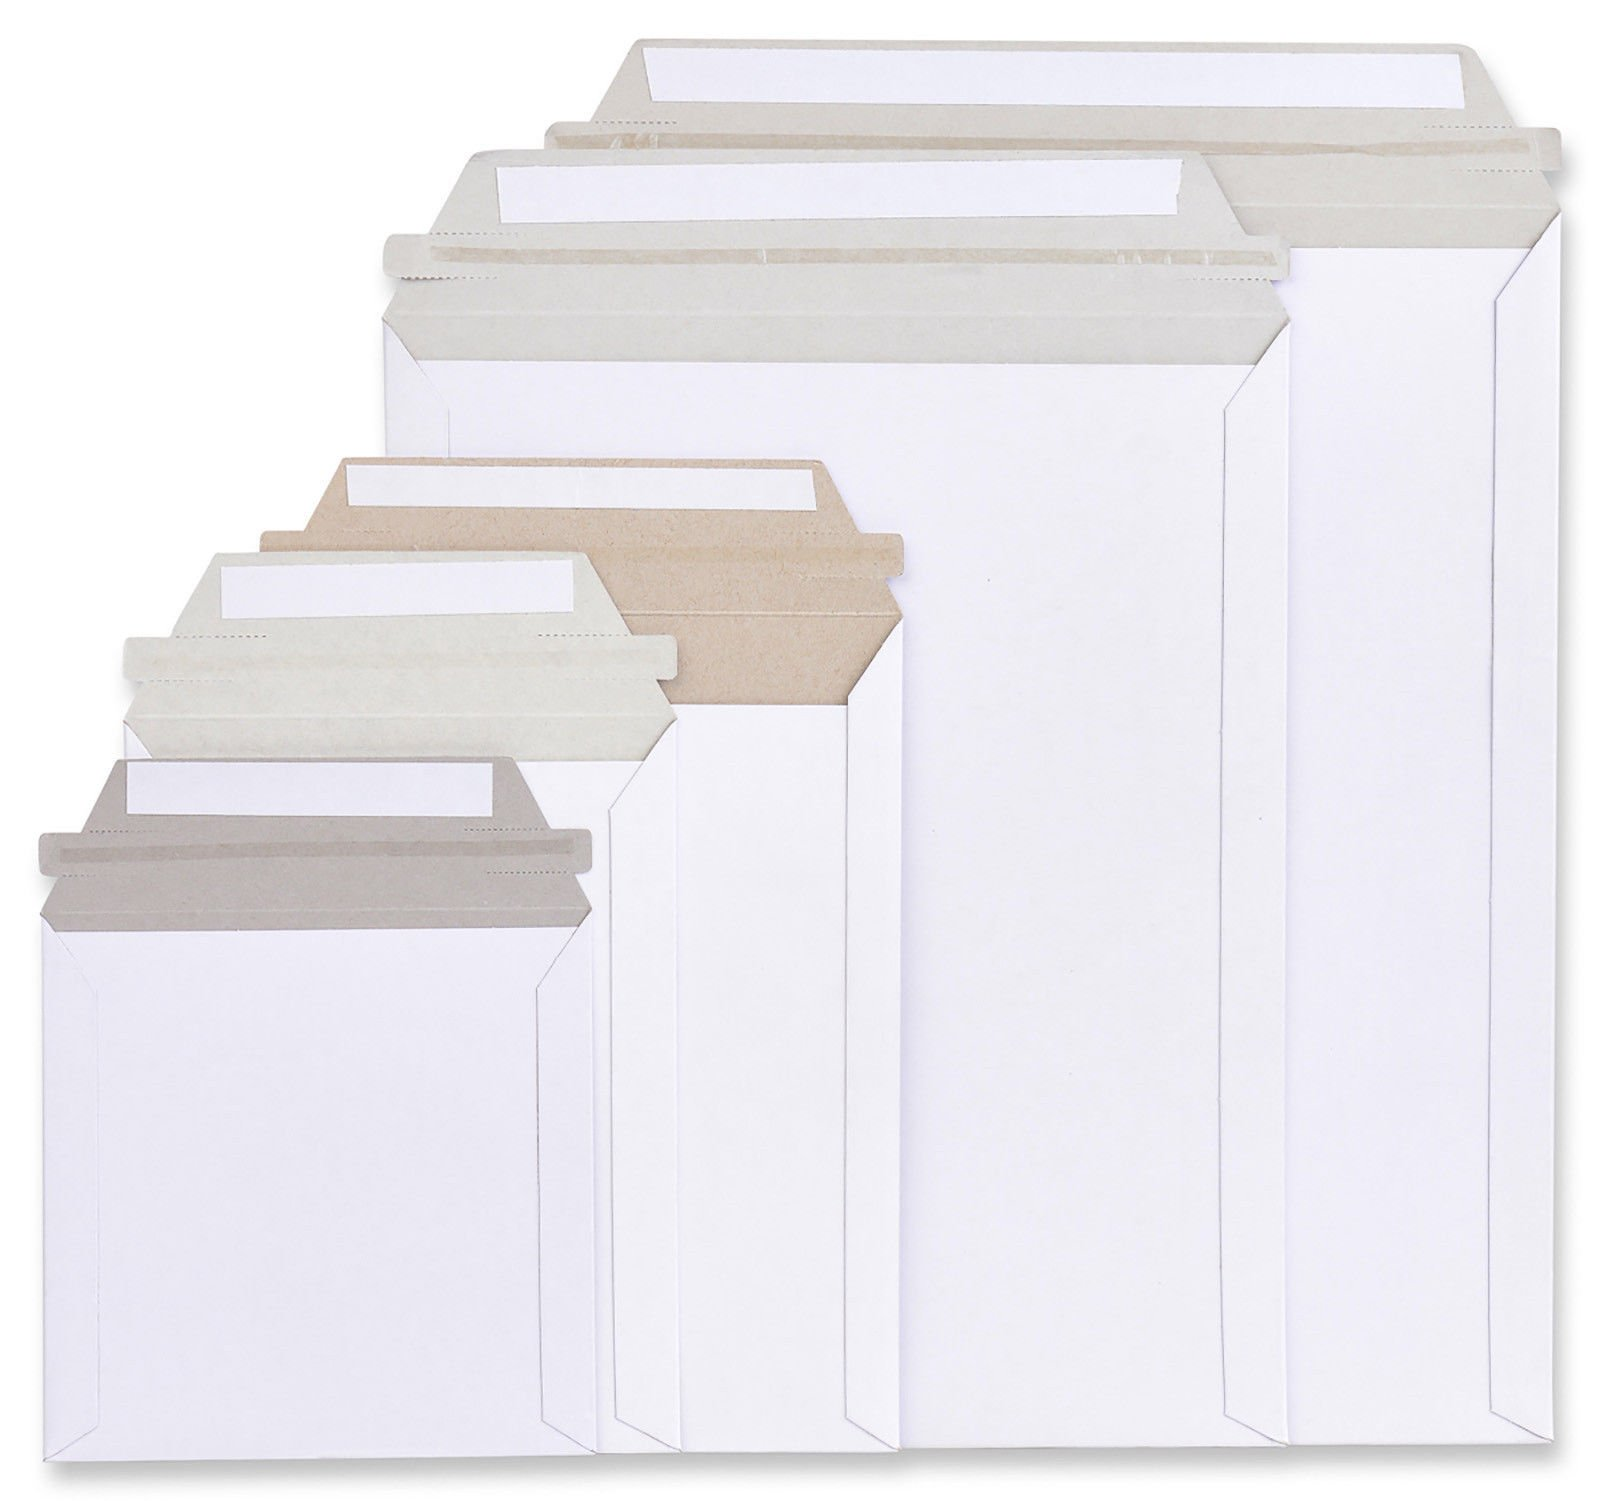 1000 Rigid Mailers 12.75 x 9.5 (12 3/4 x 9 1/2). Self sealing on long side. Paperboard envelopes. Stay Flat. No bend. White Cardboard. Wholesale price in bulk. Sold by case. Mfg# 9x12 / 10x13.